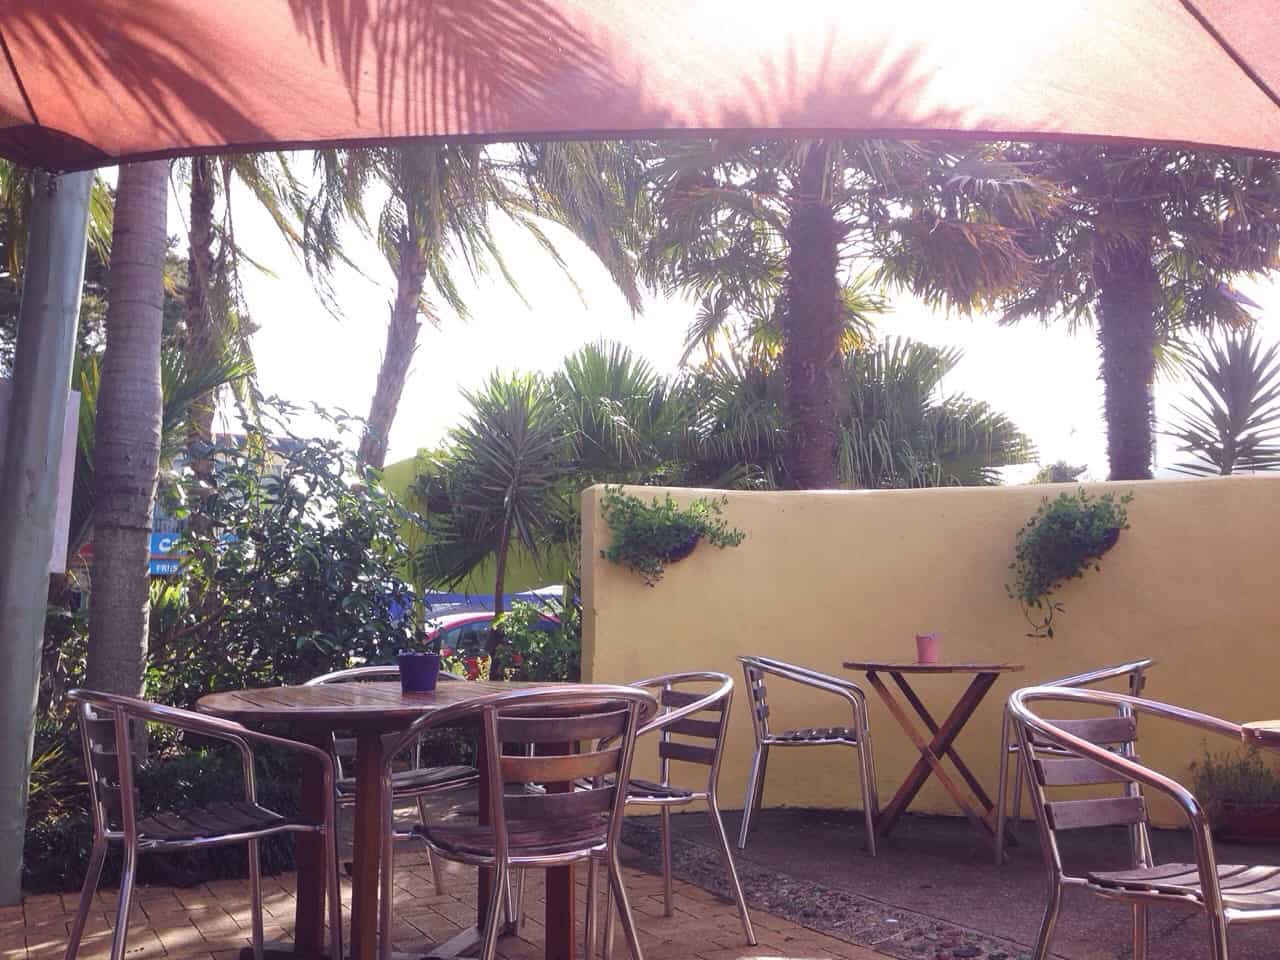 Santeez Cafe has a gorgeous courtyard area, separating it from the hustle and bustle of Kerikeri Road.